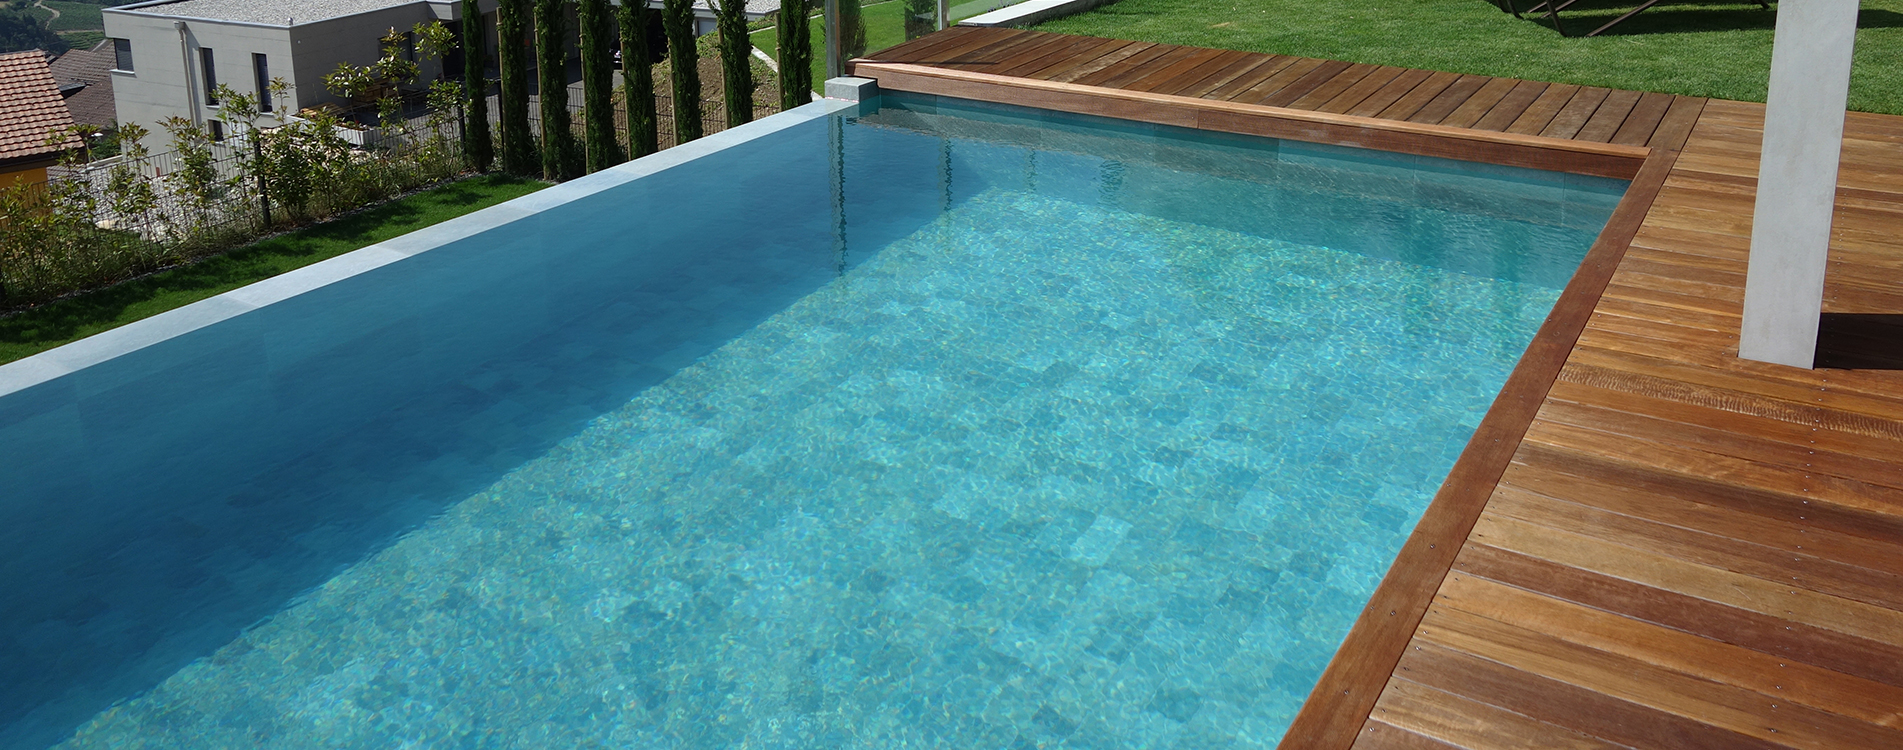 construction-piscine-carrelage-1